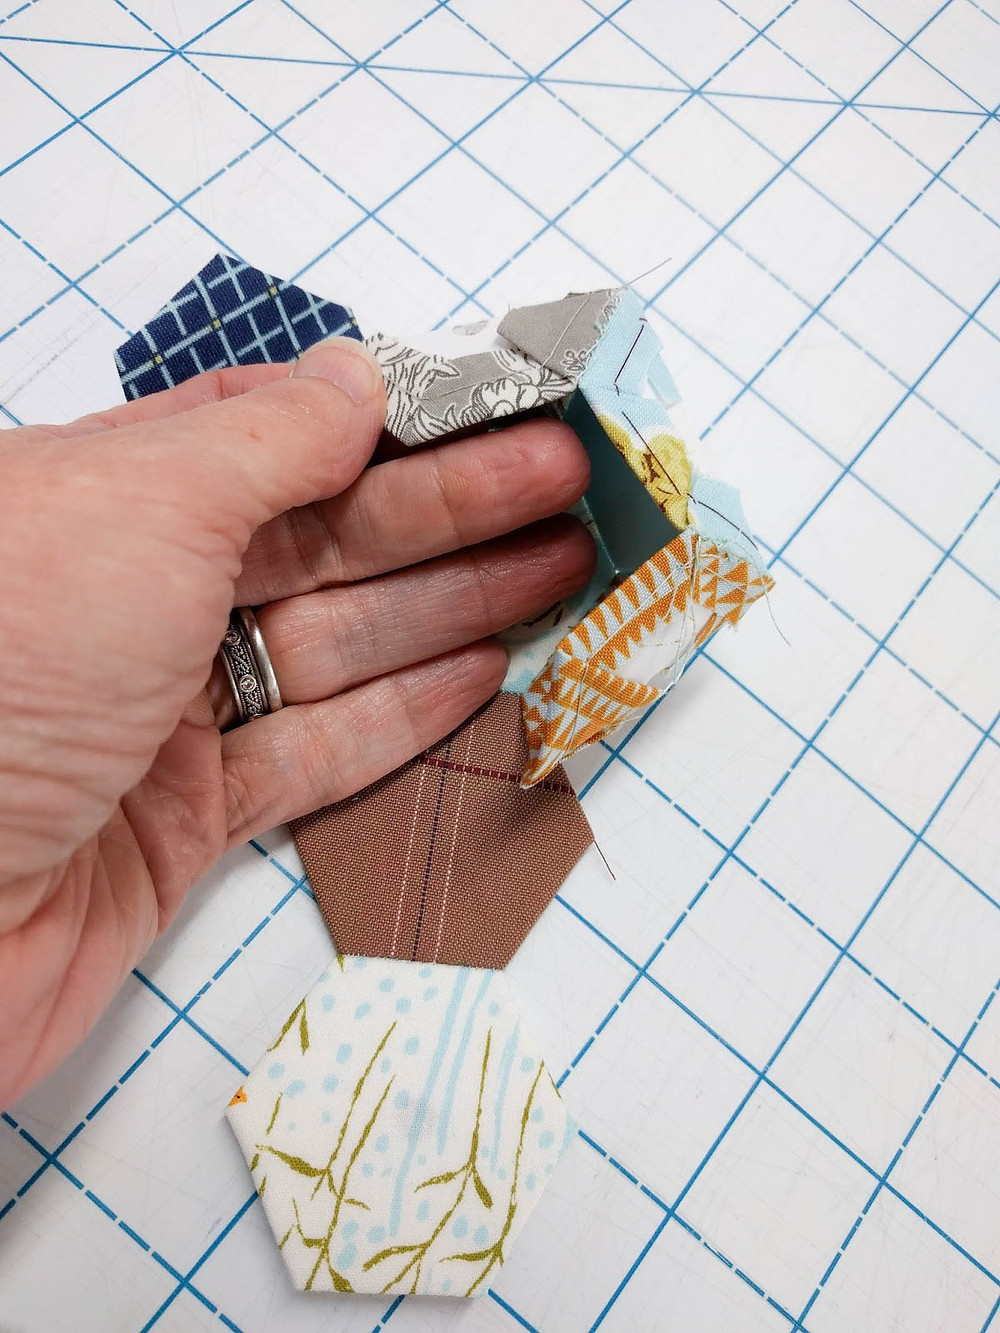 Hexie pincushion tutorial